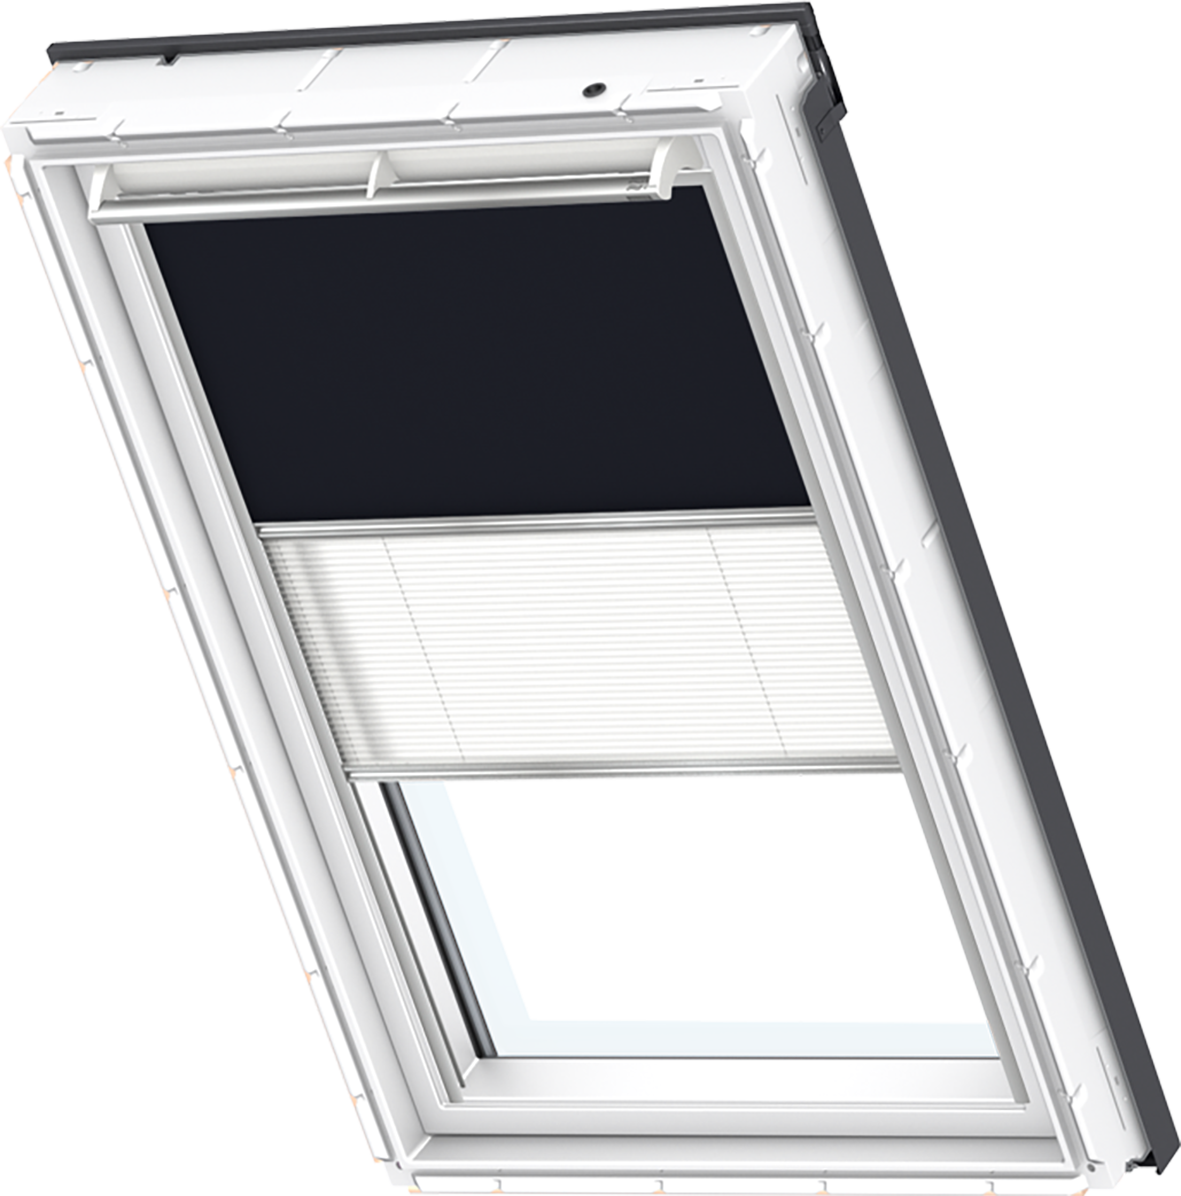 original velux set plissee rollo verdunkelung dachfenster ggl ghl gpl gtl gxl ebay. Black Bedroom Furniture Sets. Home Design Ideas